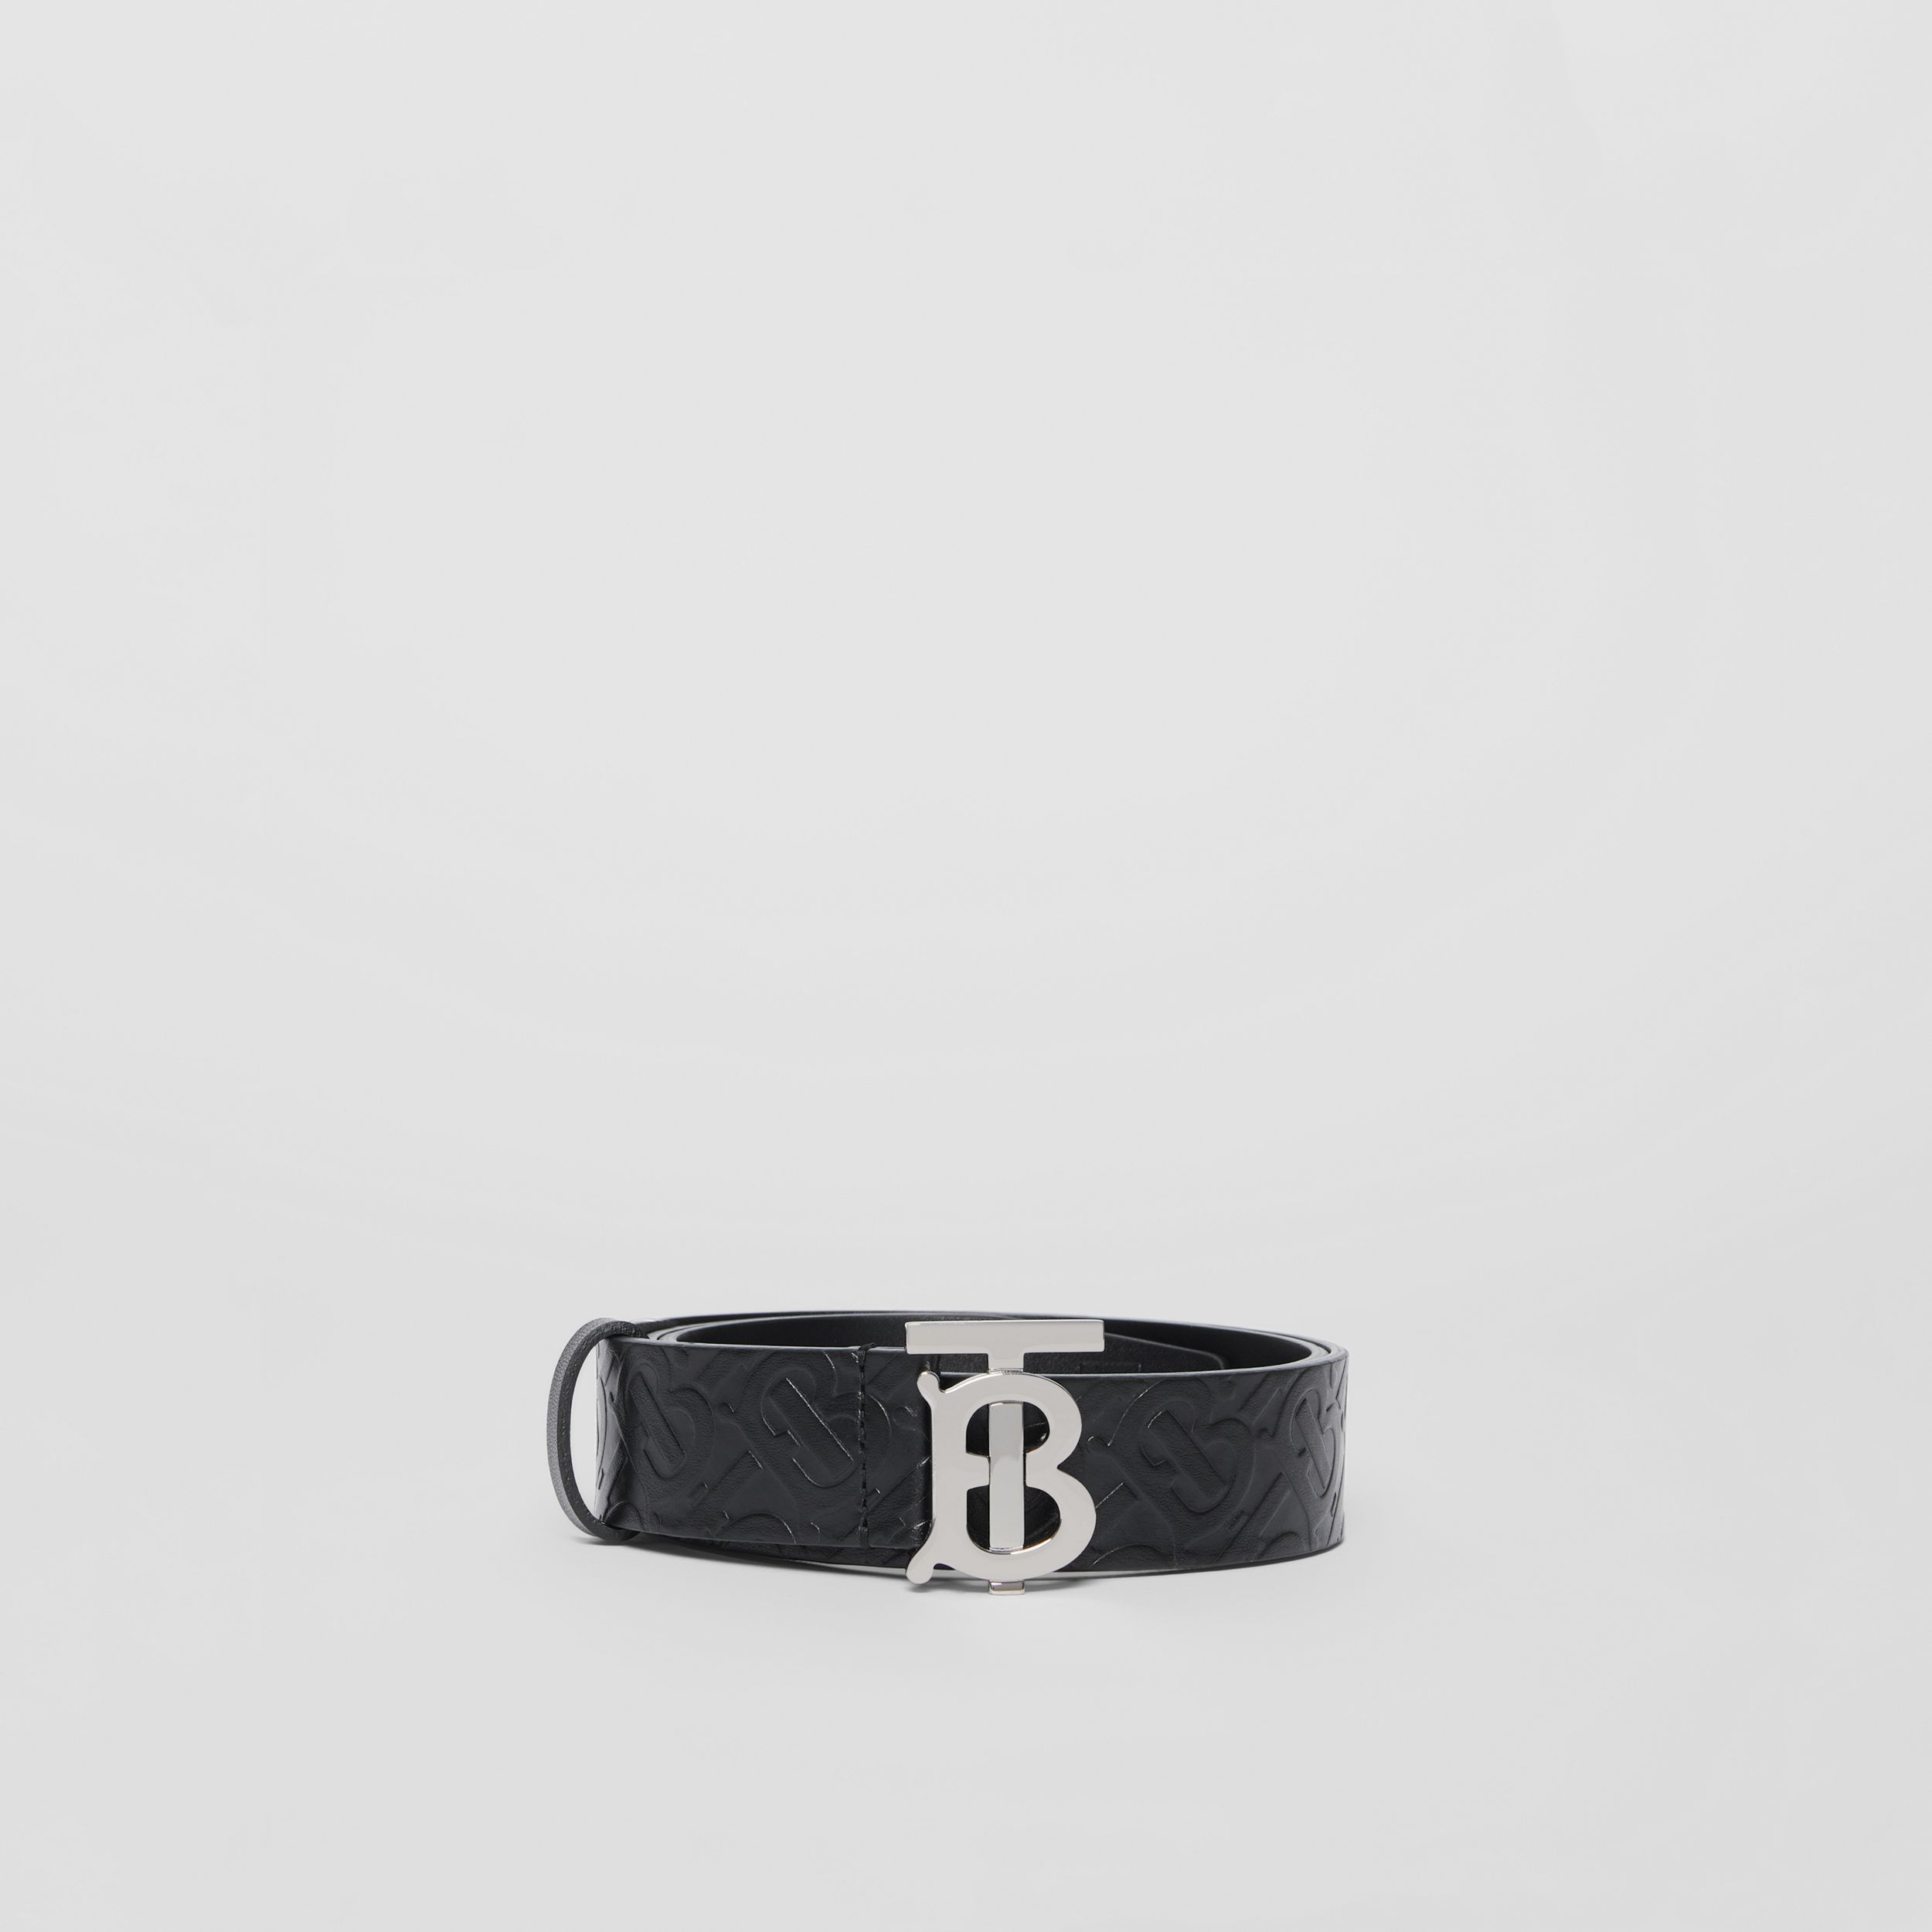 Monogram Motif Monogram Leather Belt in Black/palladium - Men | Burberry - 4